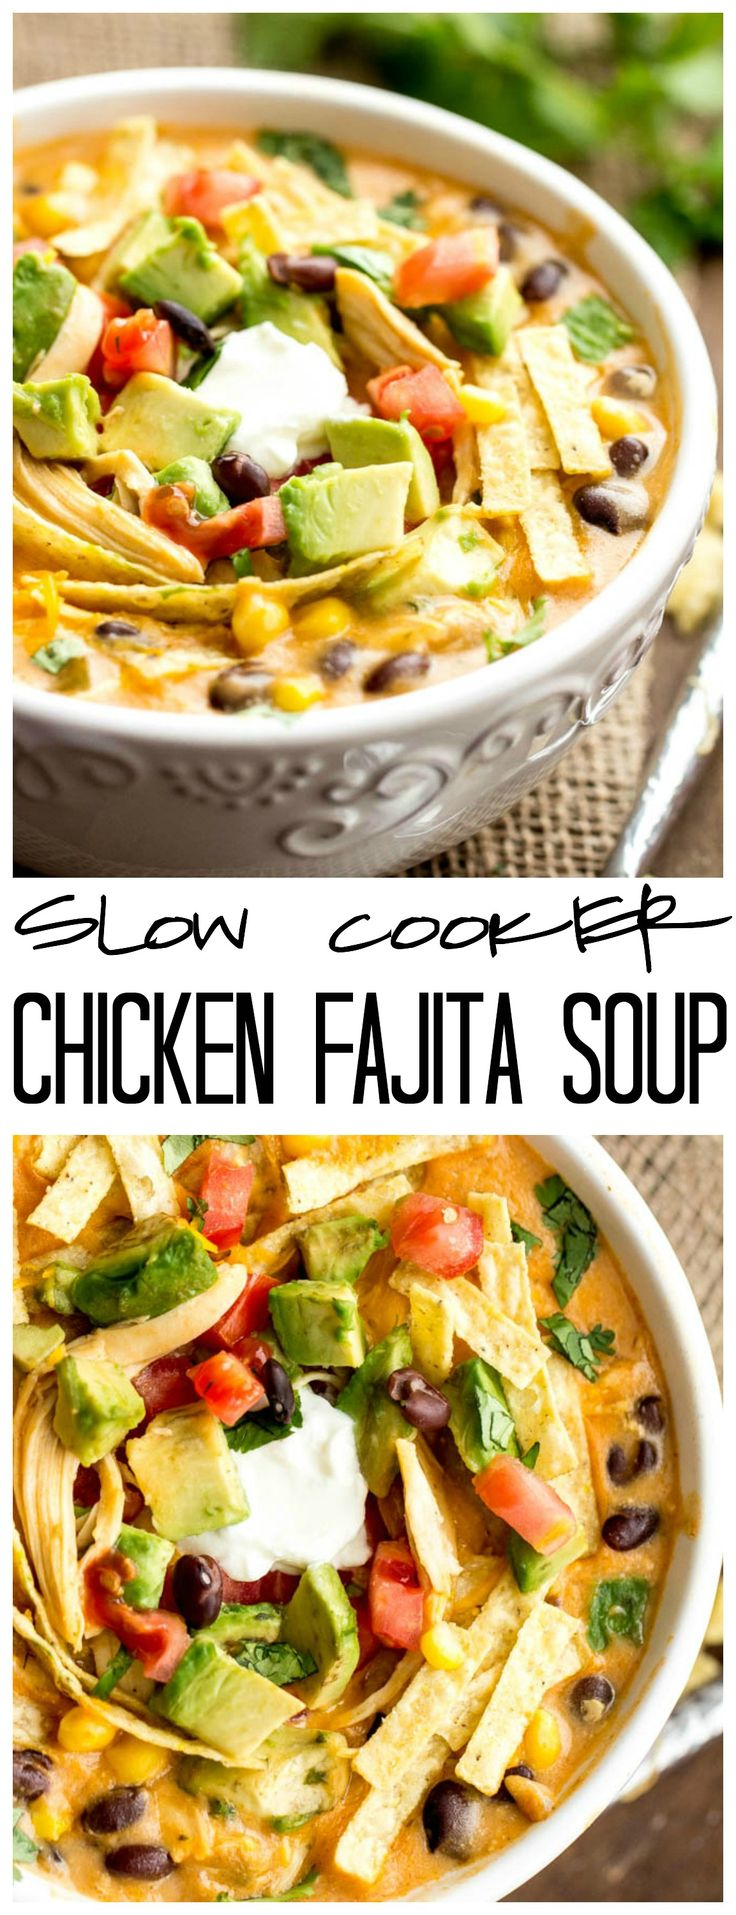 This Slow Cooker Chicken Fajita Soup takes 5 minutes to throw into the crockpot and will be the best and c